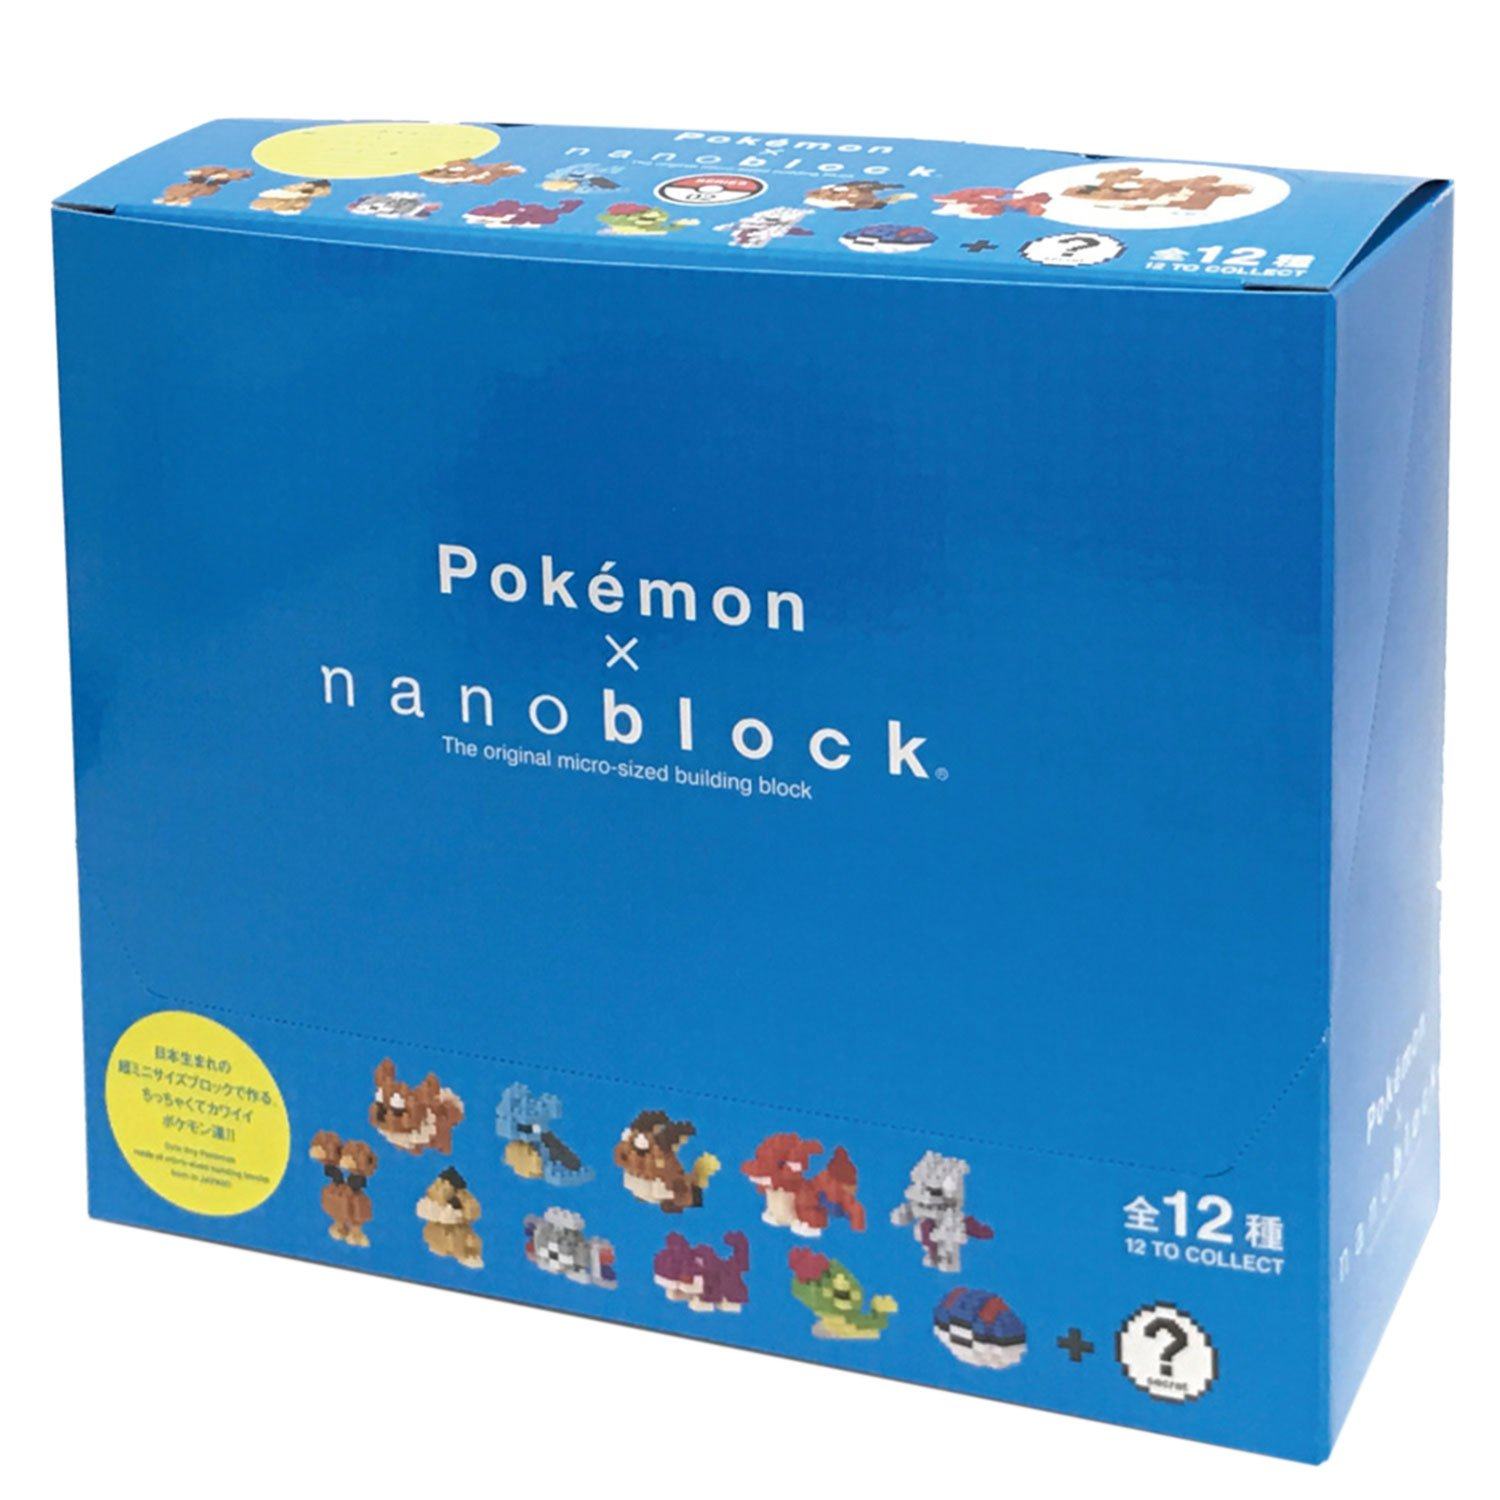 Nanoblock Mini Pokemon Series 02 NBMPM_ 02 S BOX Item 1 BOX = 12 pieces, 12 types